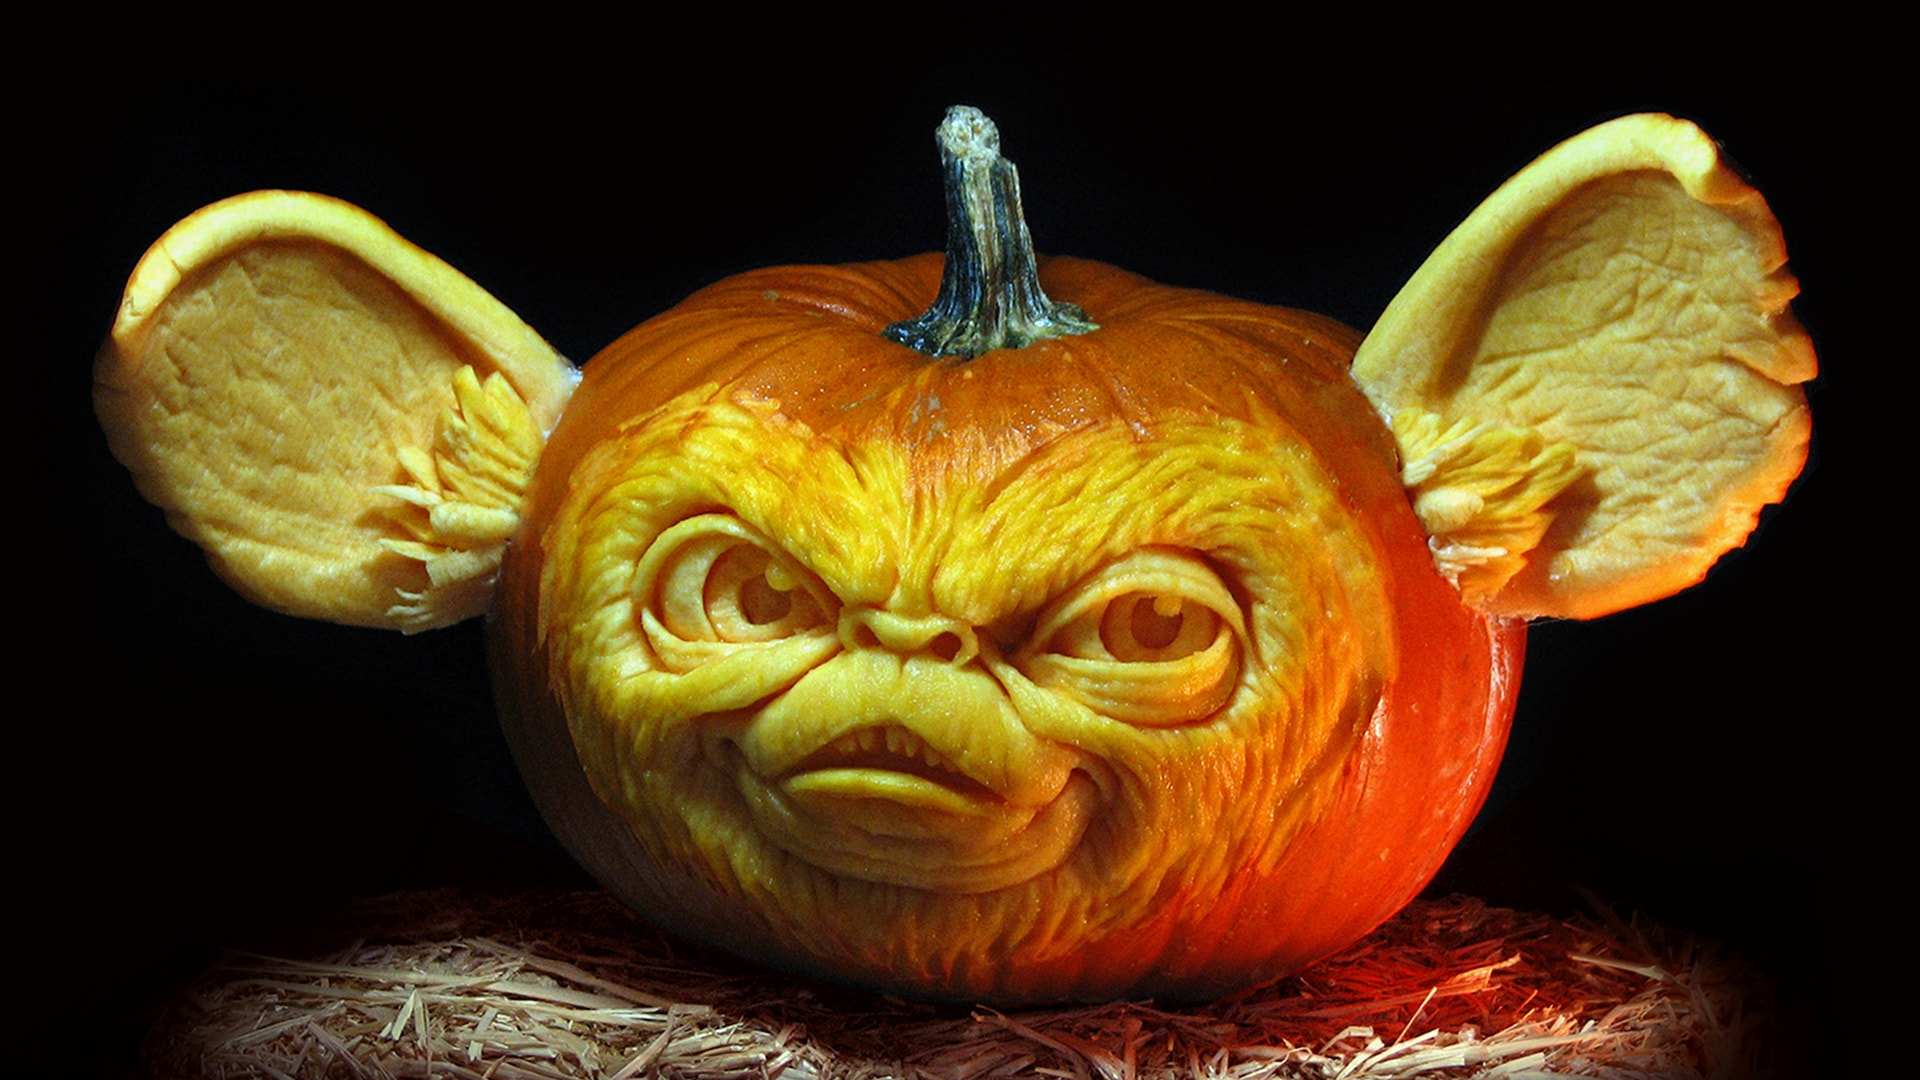 Ghoulishly grand carved pumpkins Pumpkin carving designs photos